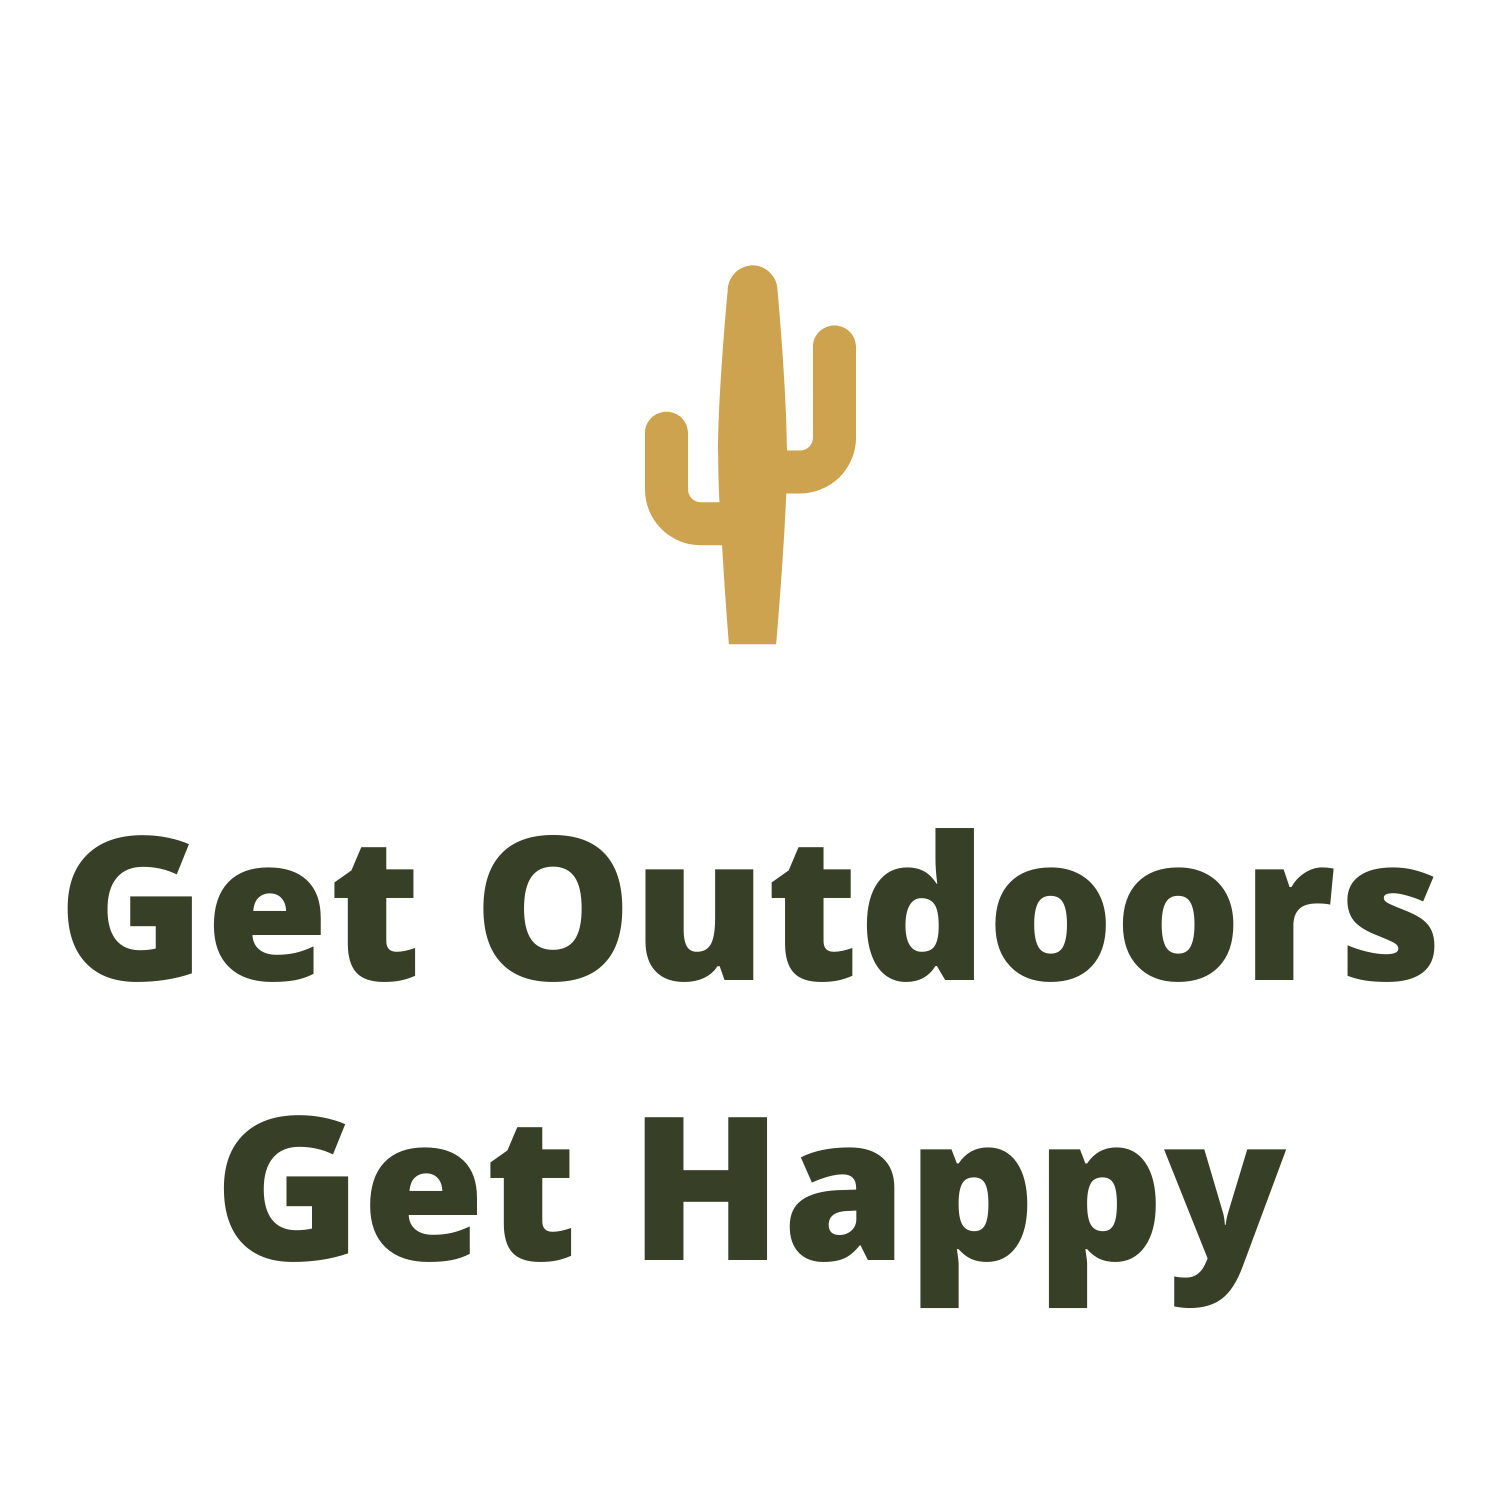 Get Outdoors Get Happy